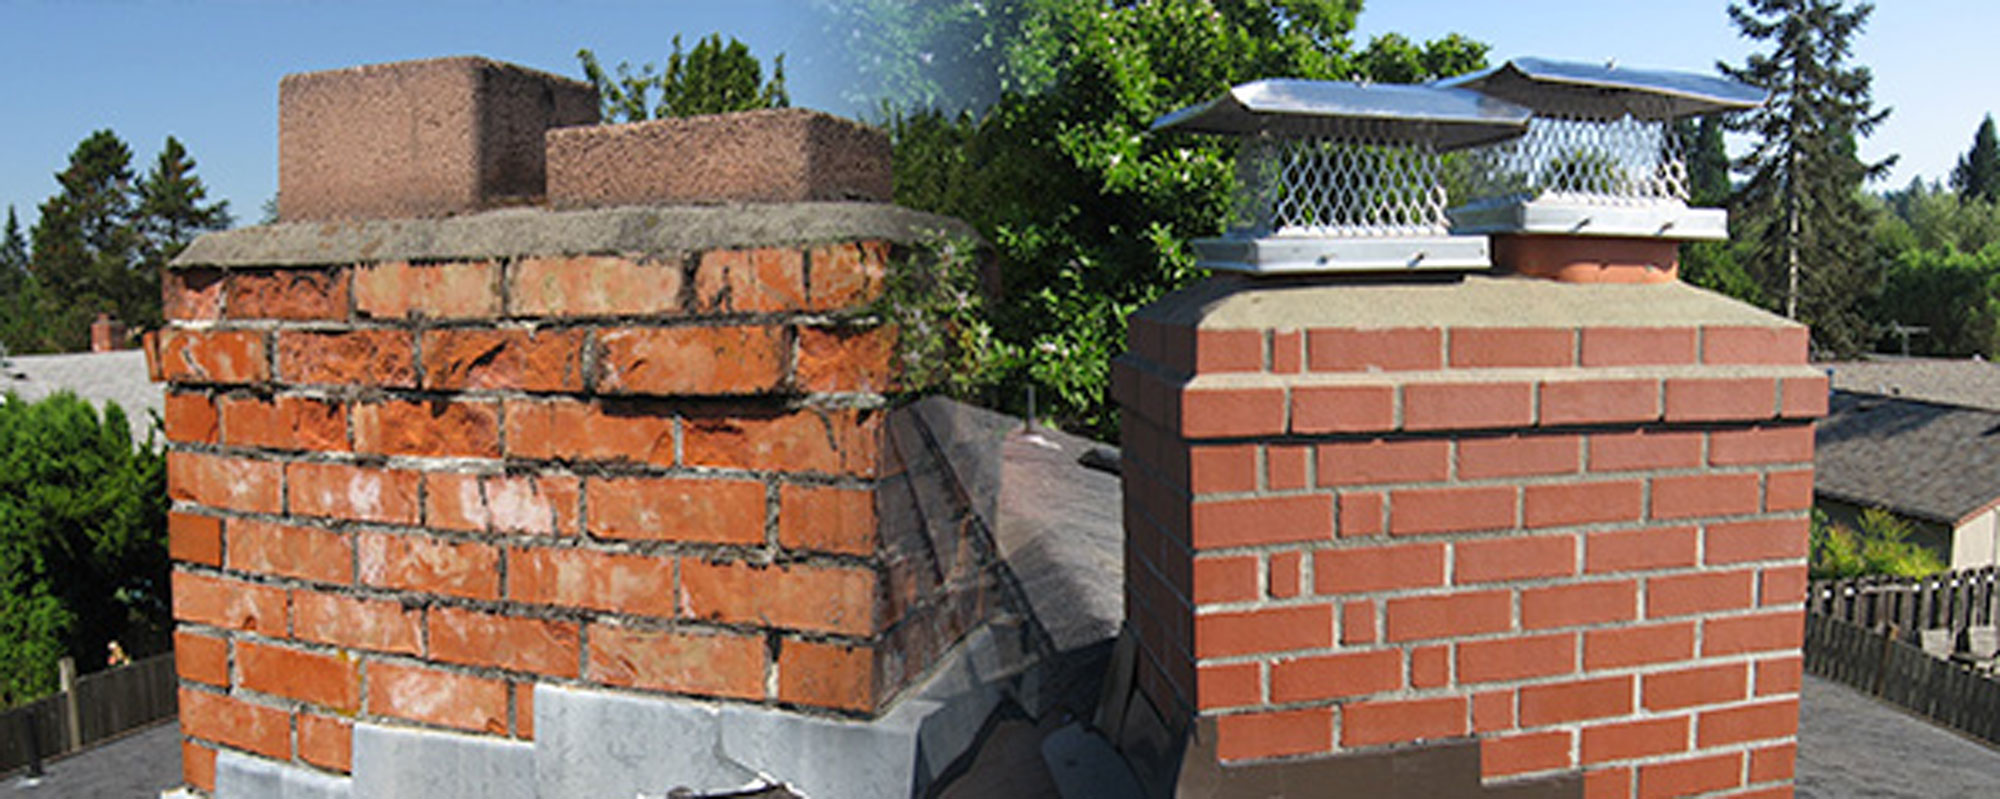 Our Chimney Repair Services Chimcare